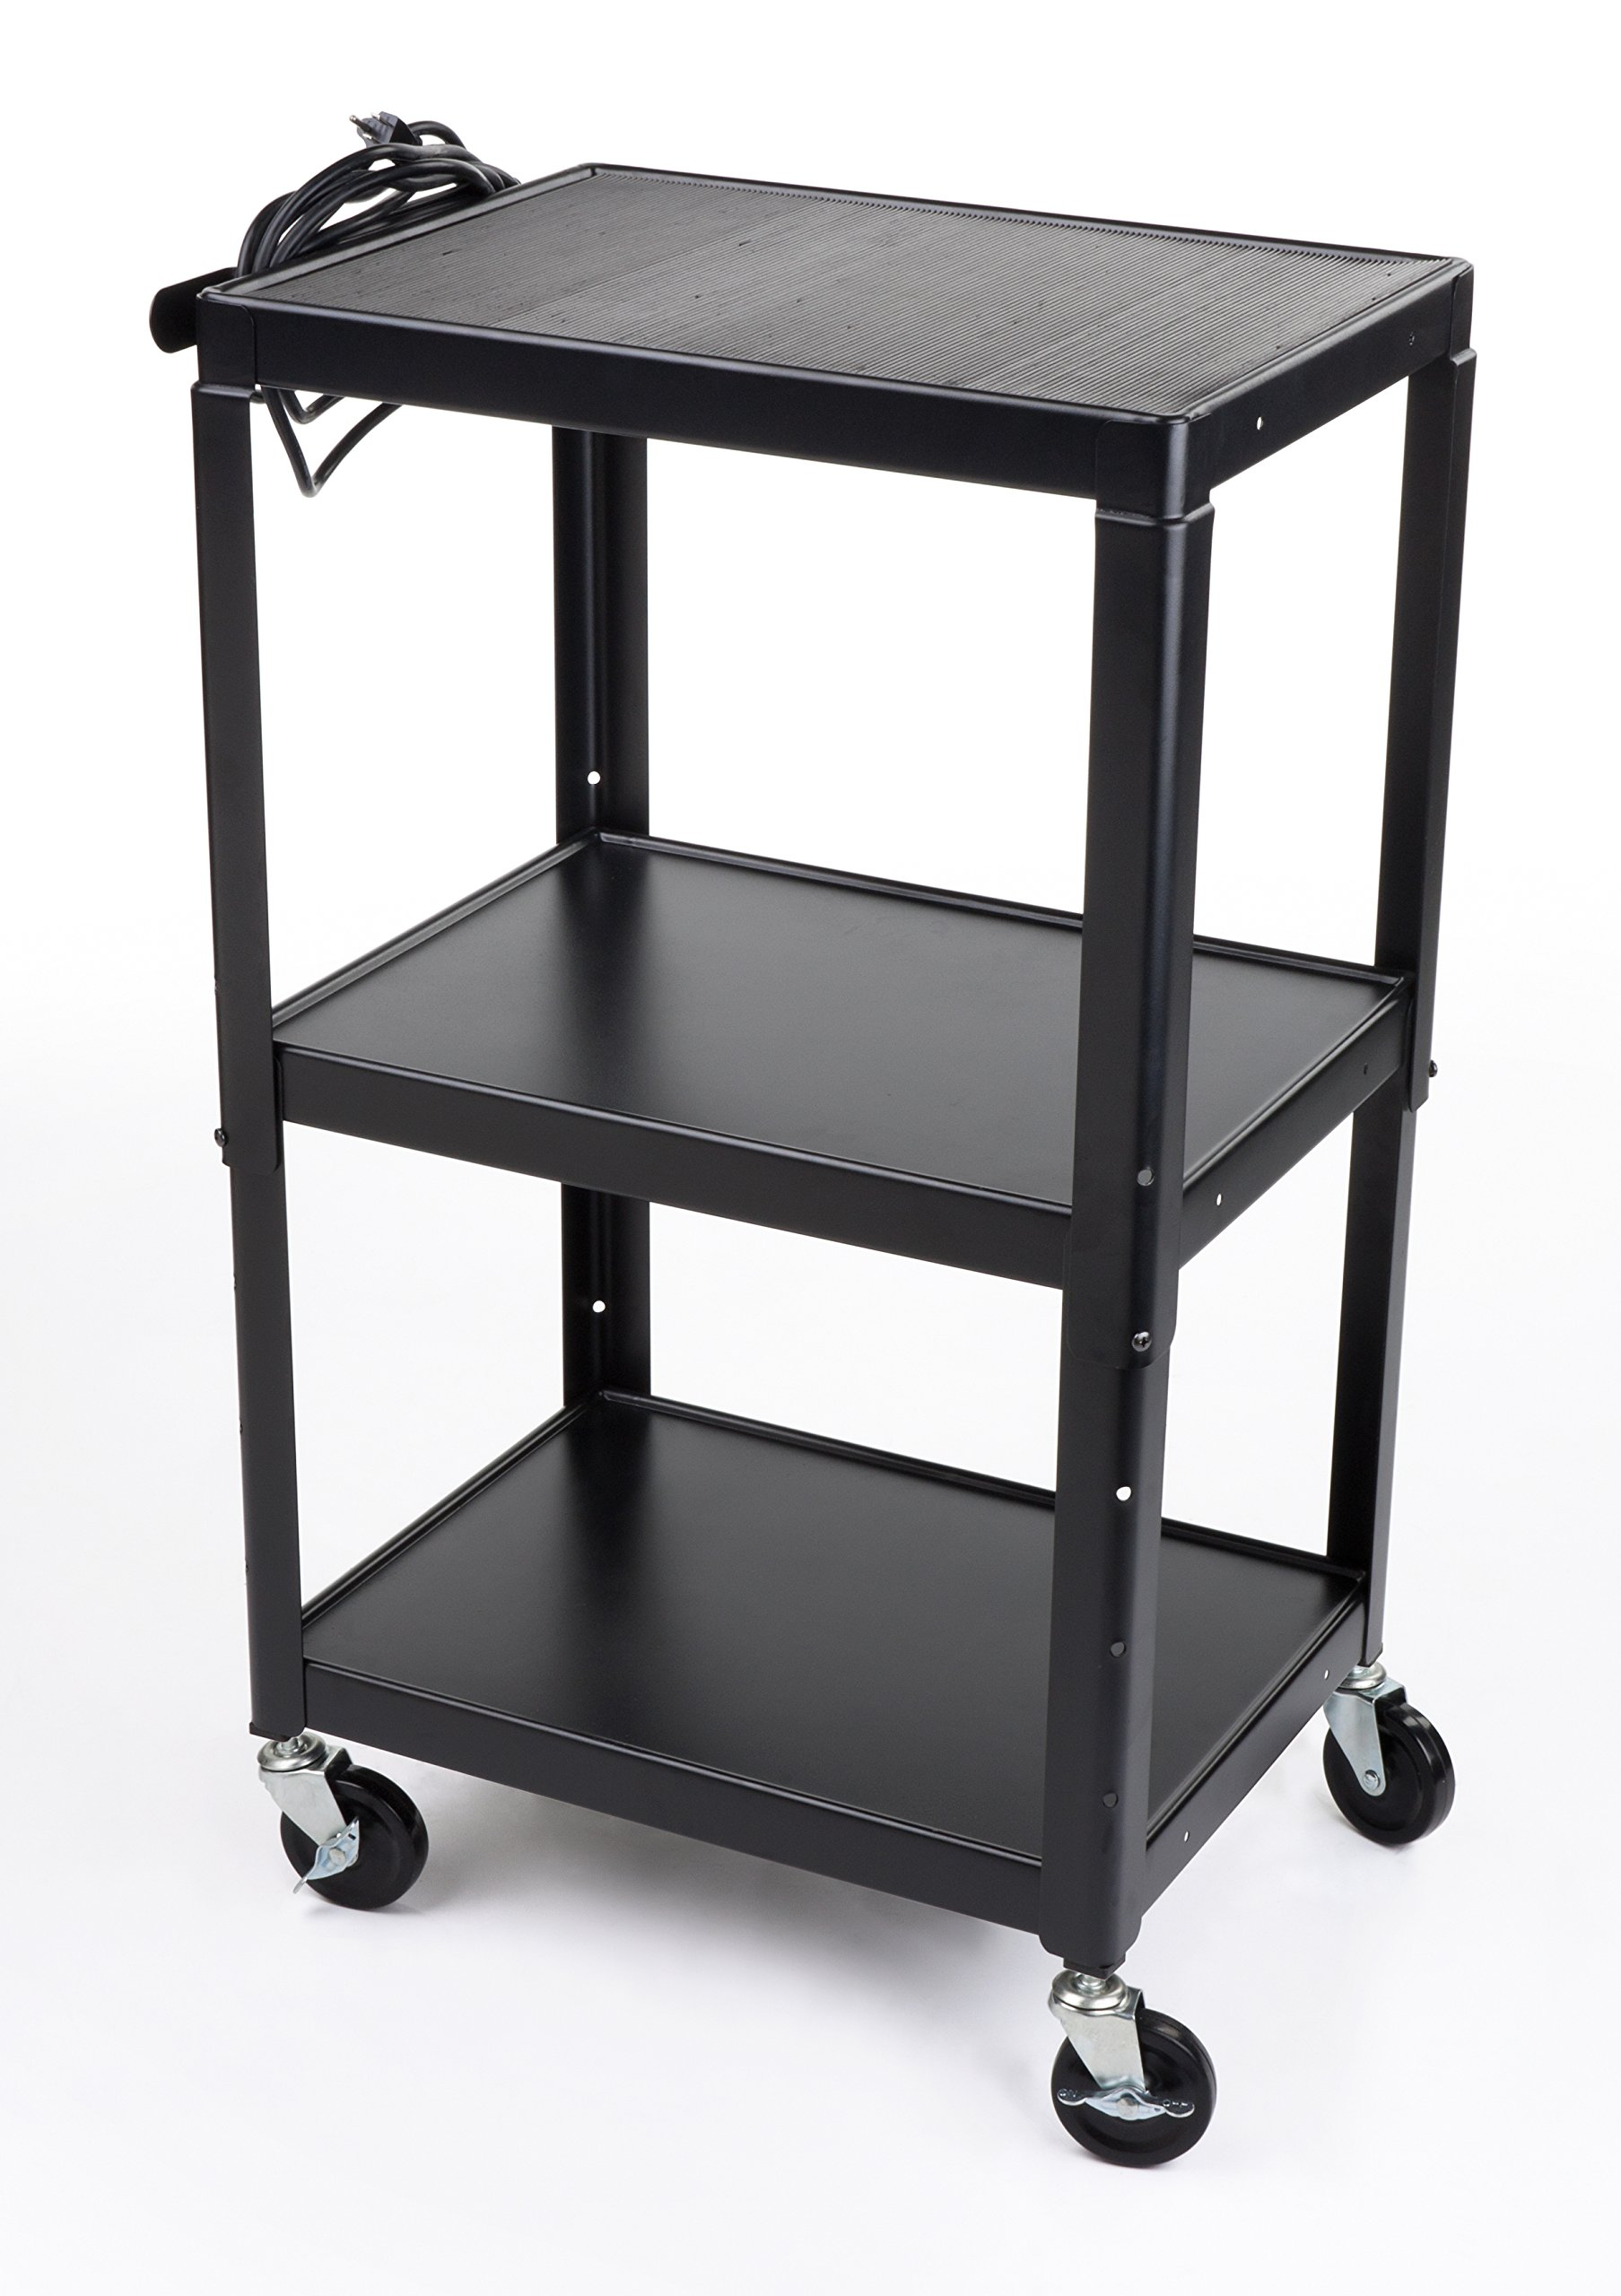 Displays2go AV Cart with Adjustable Shelf and Anti-Slip Pad, 4 Wheels and 4 Outlet Surge Protector, 24 x 43 x 18-Inch, Powder-Coated Black Steel (LMC3SA1) by Displays2go